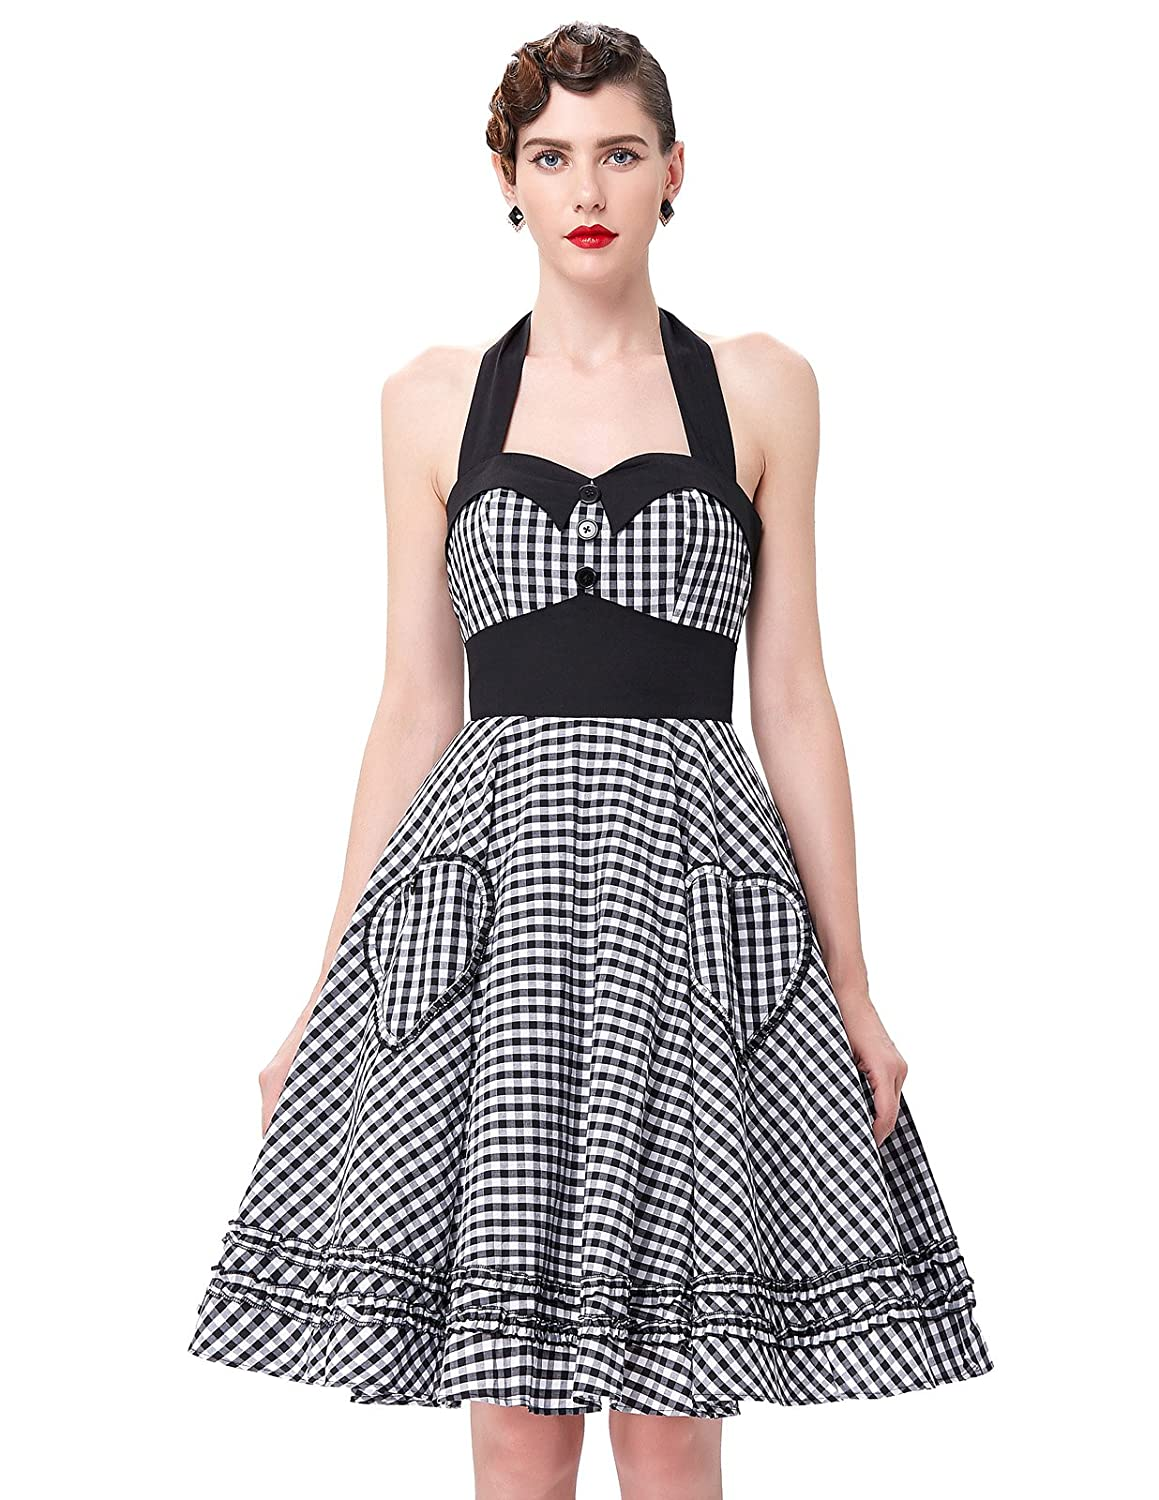 Vintage Polka Dot Dresses – Ditsy 50s Prints Halter Neck Vintage Cocktail Dress JS6091 $28.99 AT vintagedancer.com